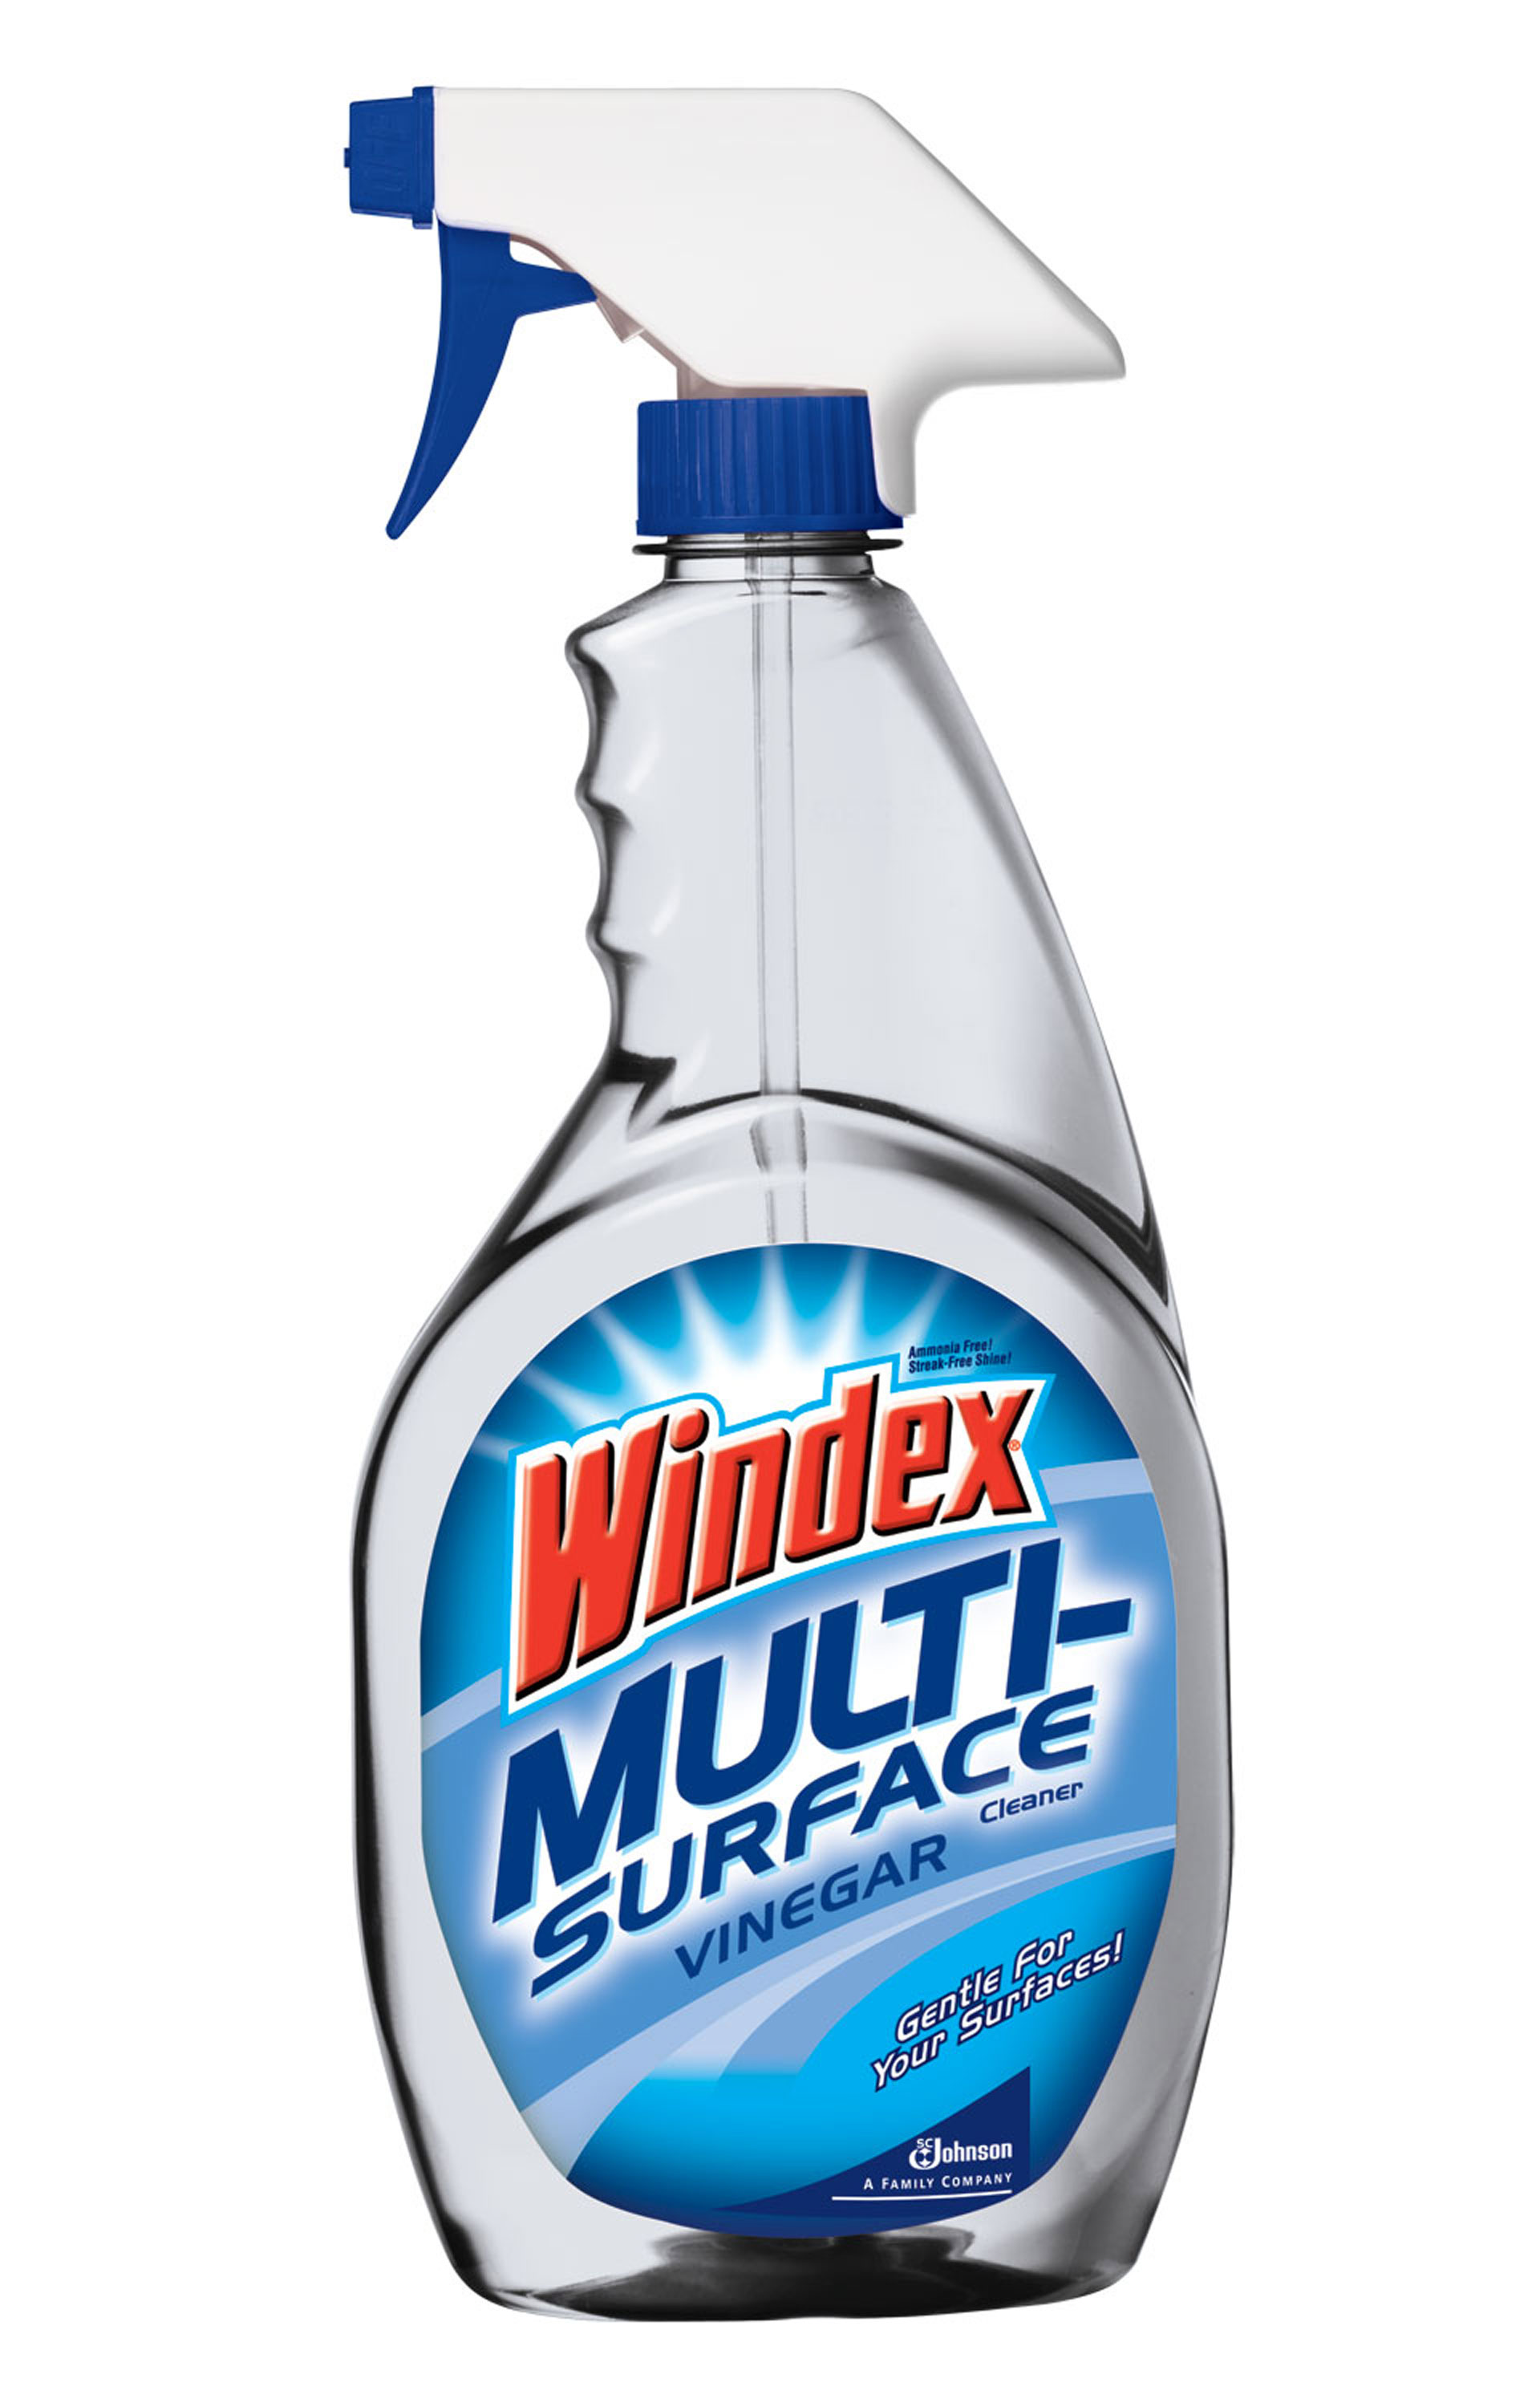 Windex Multi-Surface Vinegar Cleaner Review